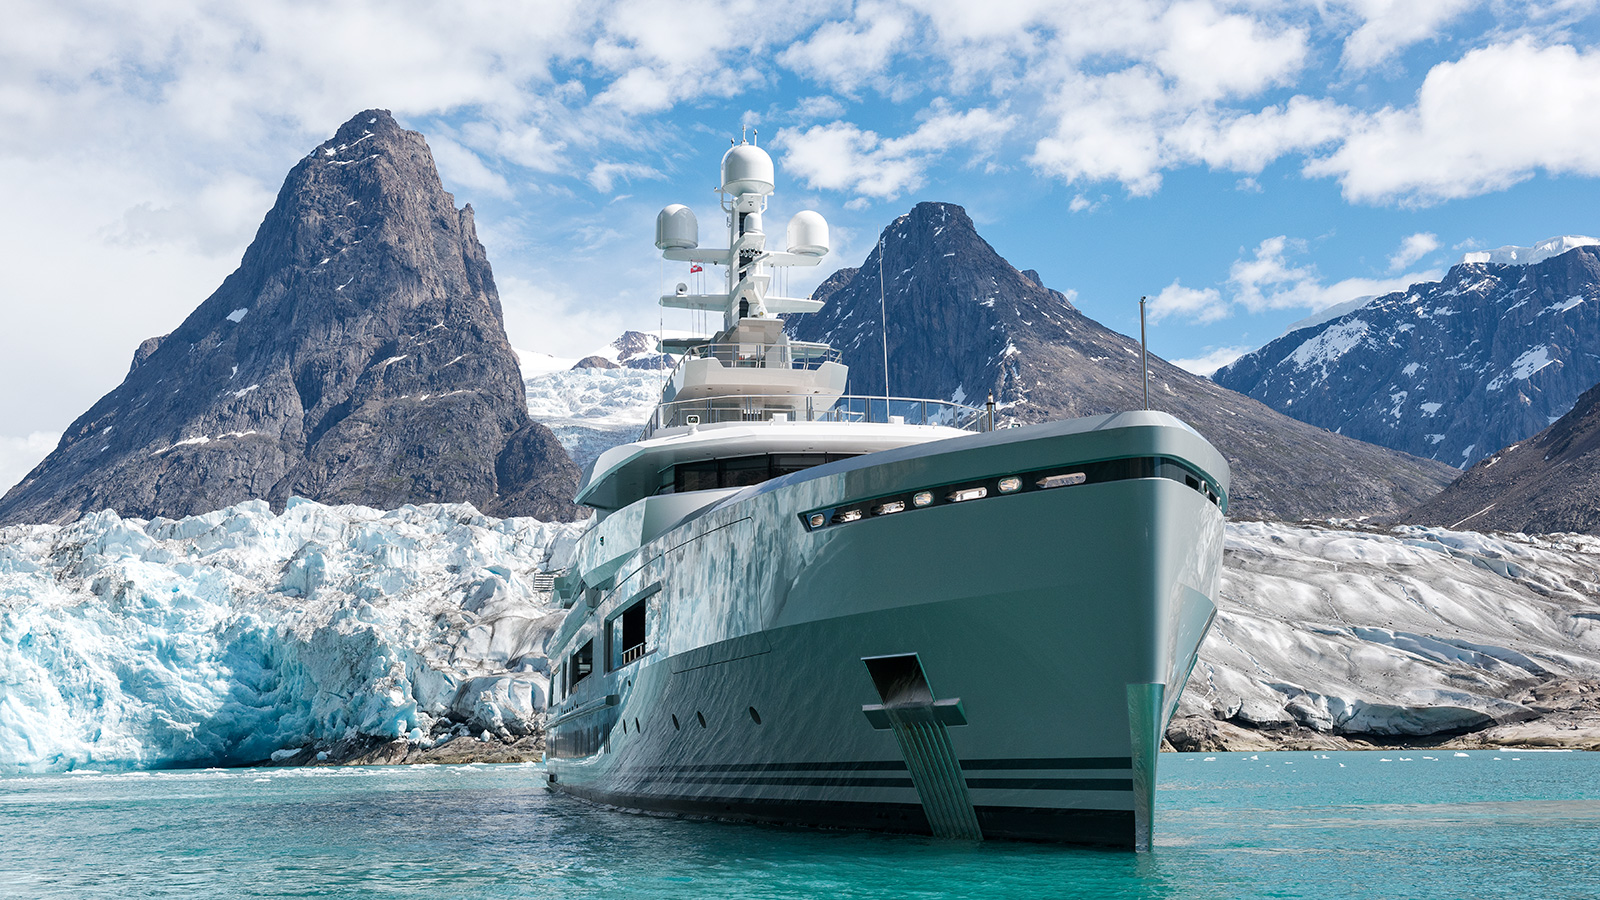 bow-view-of-abeking-and-rasmussen-explorer-yacht-cloudbreak